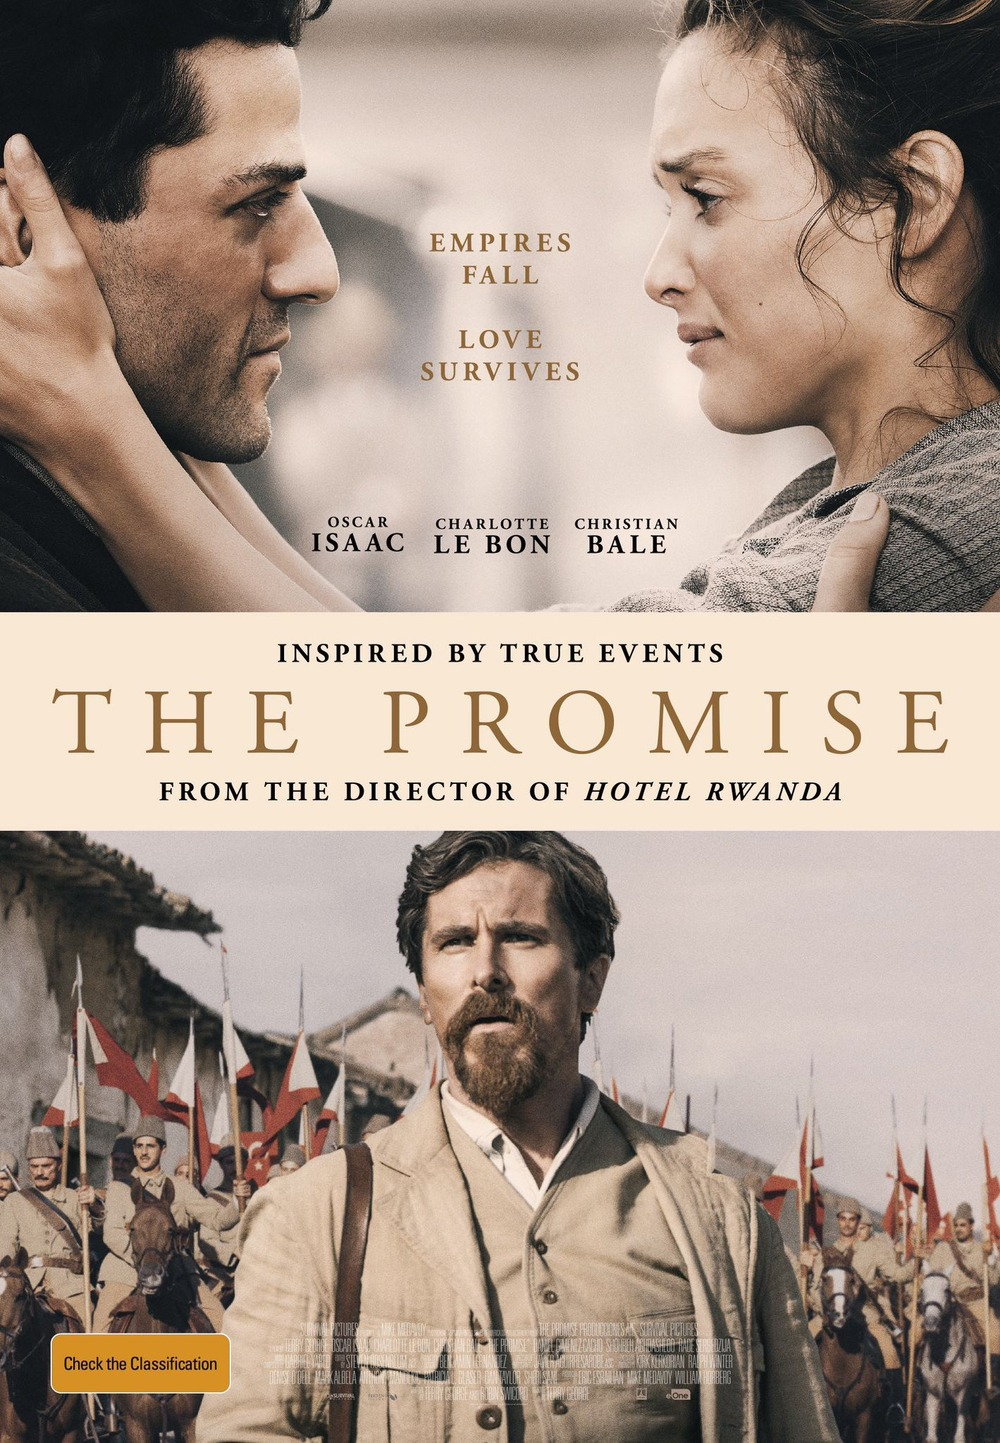 the promise film